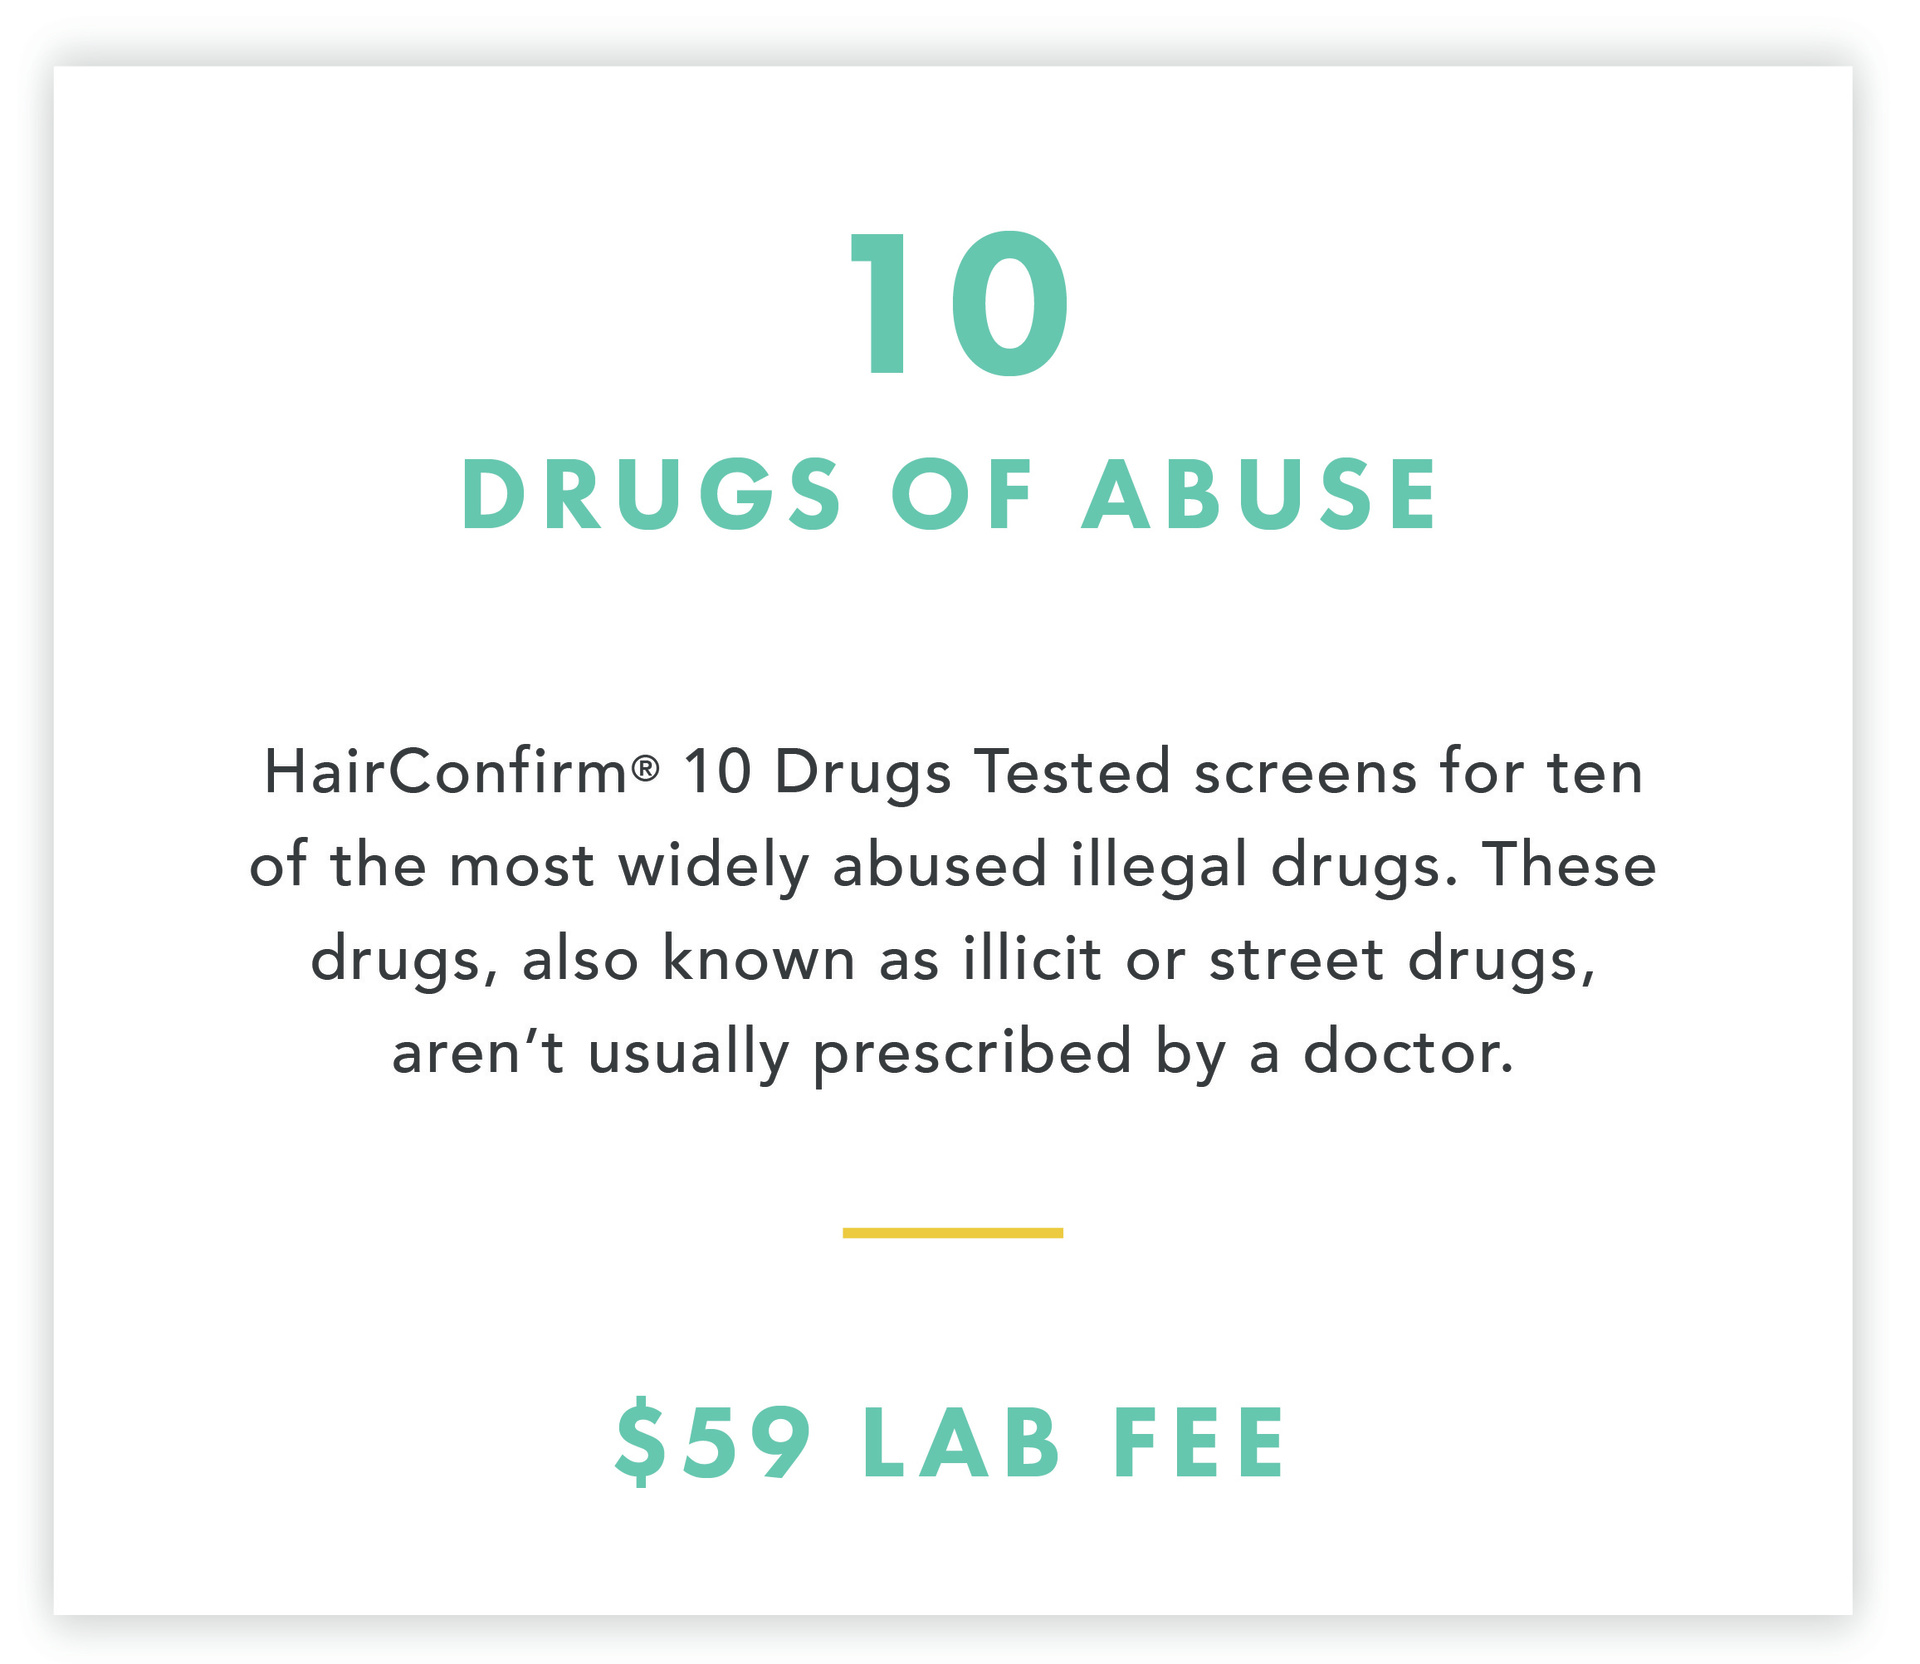 HairConfirm Hair Drug Test